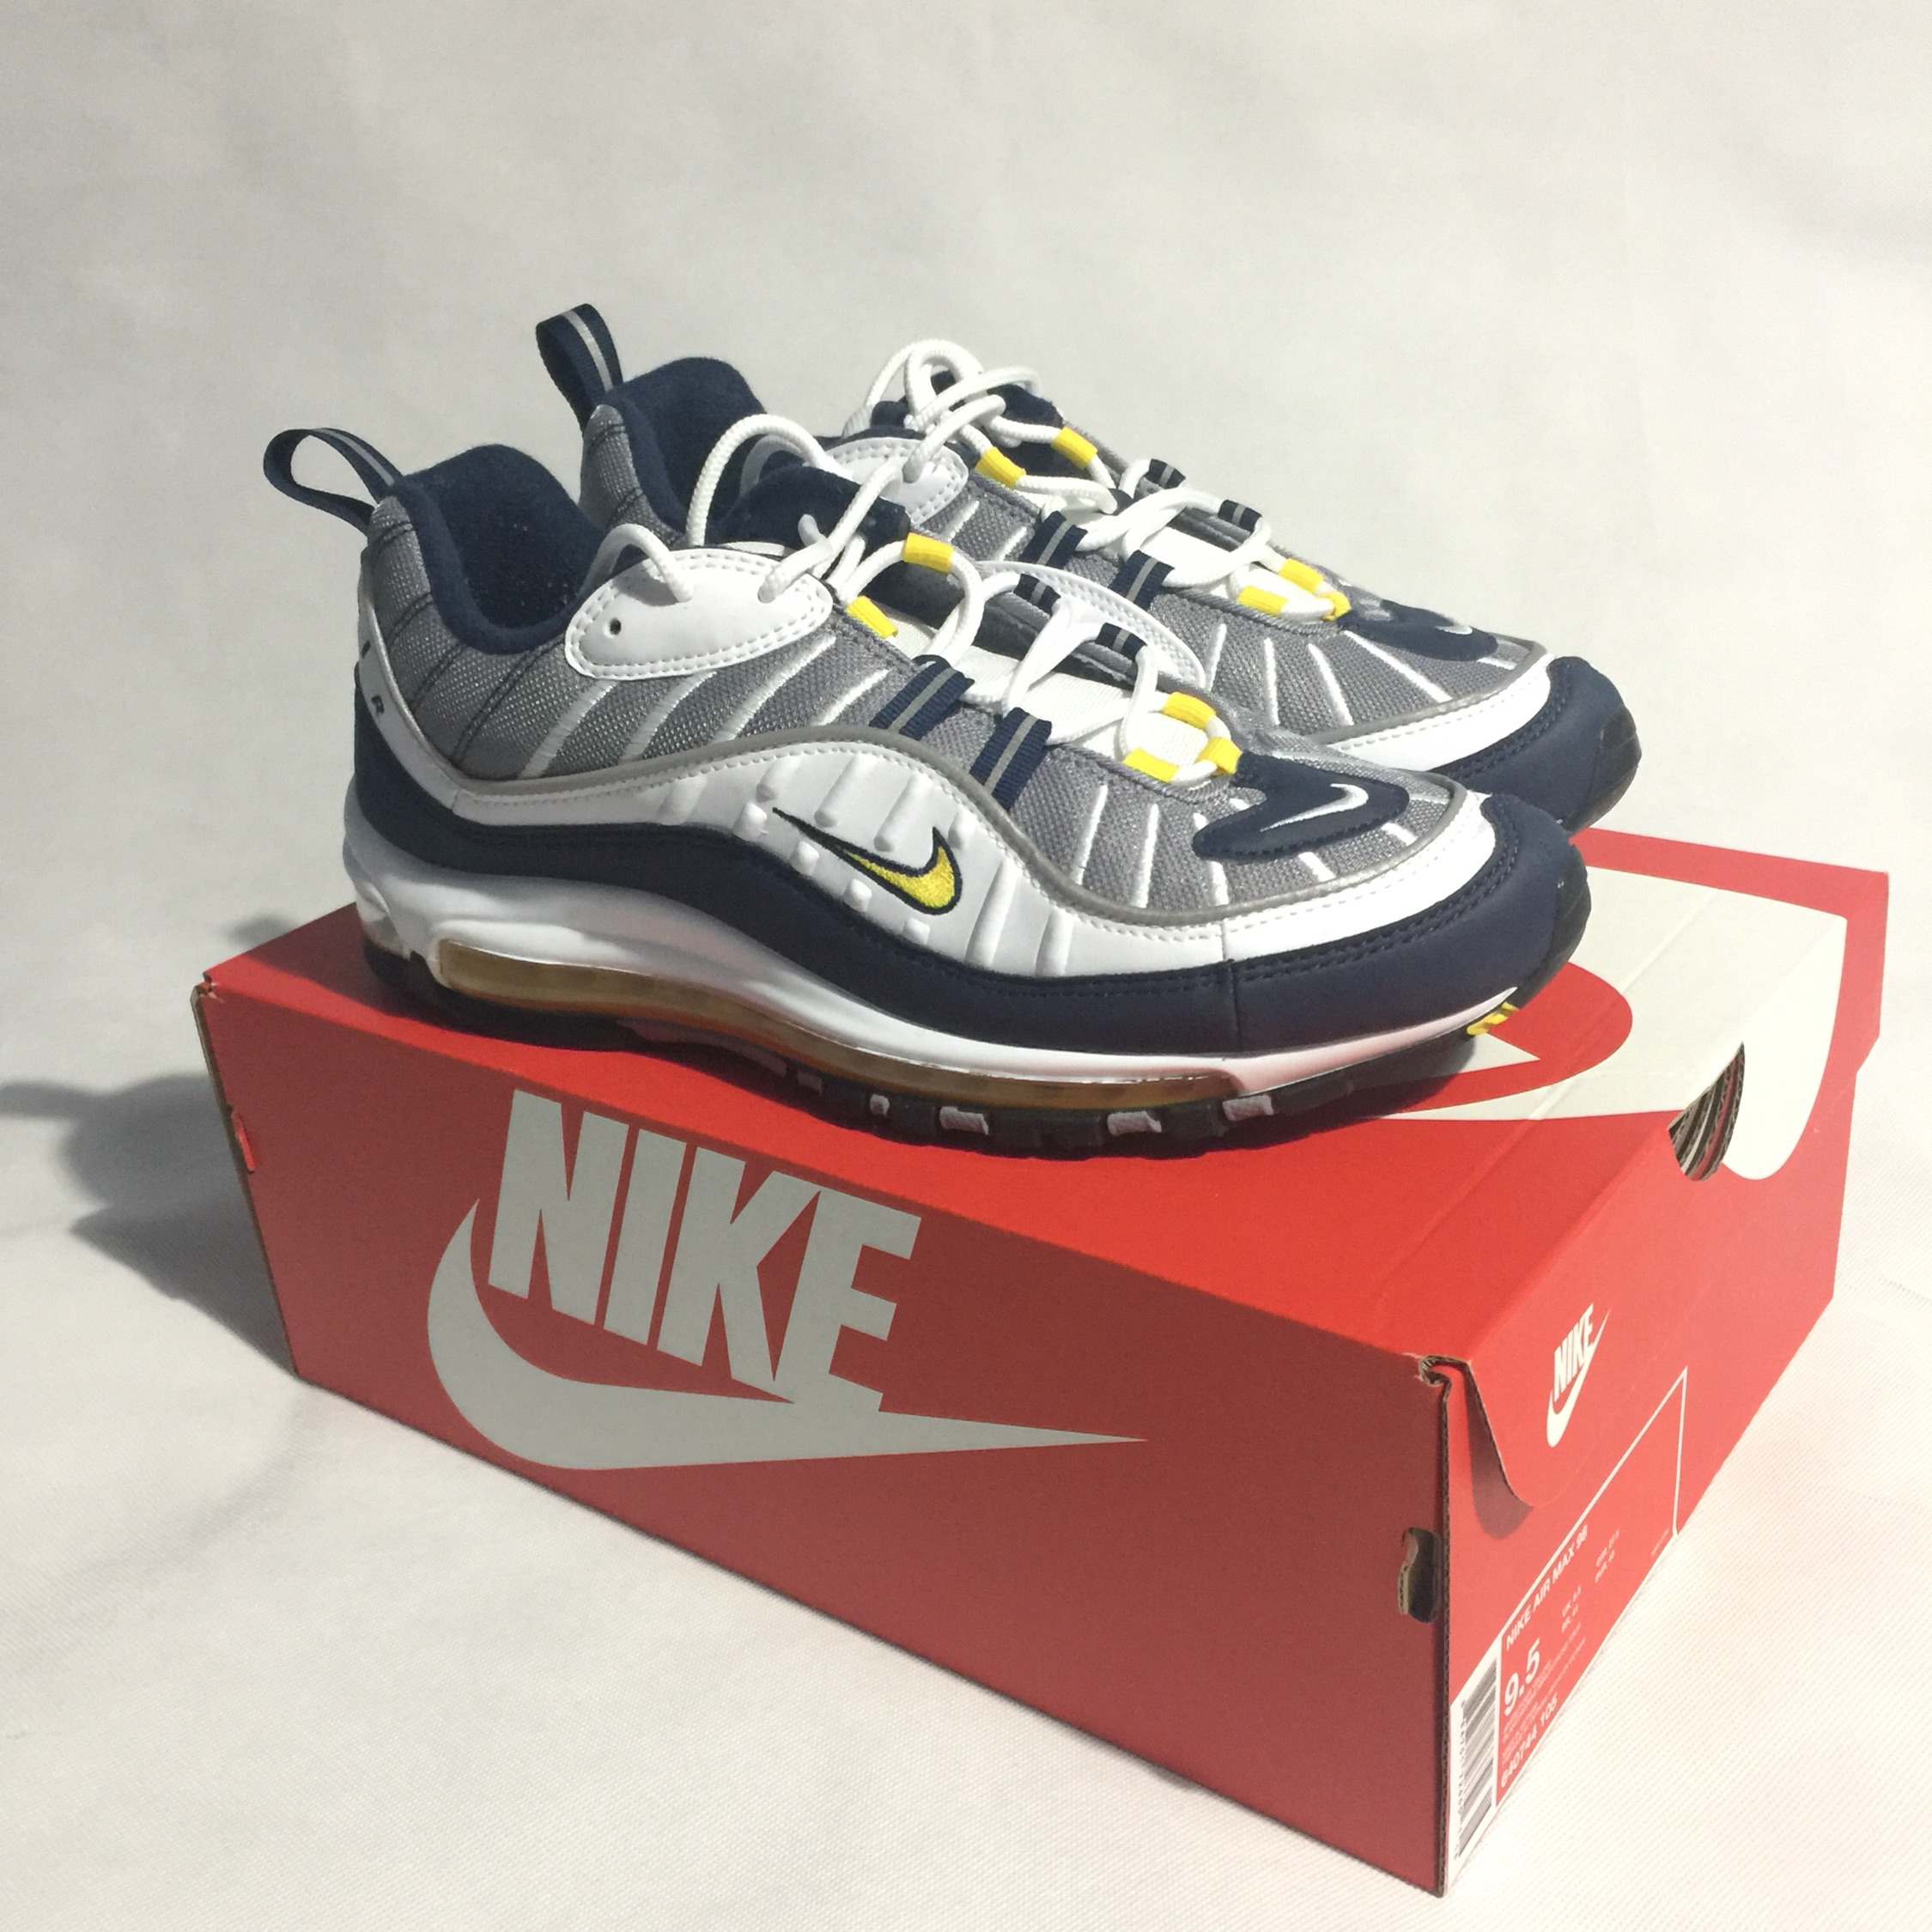 Nike Air Max 98 giallo